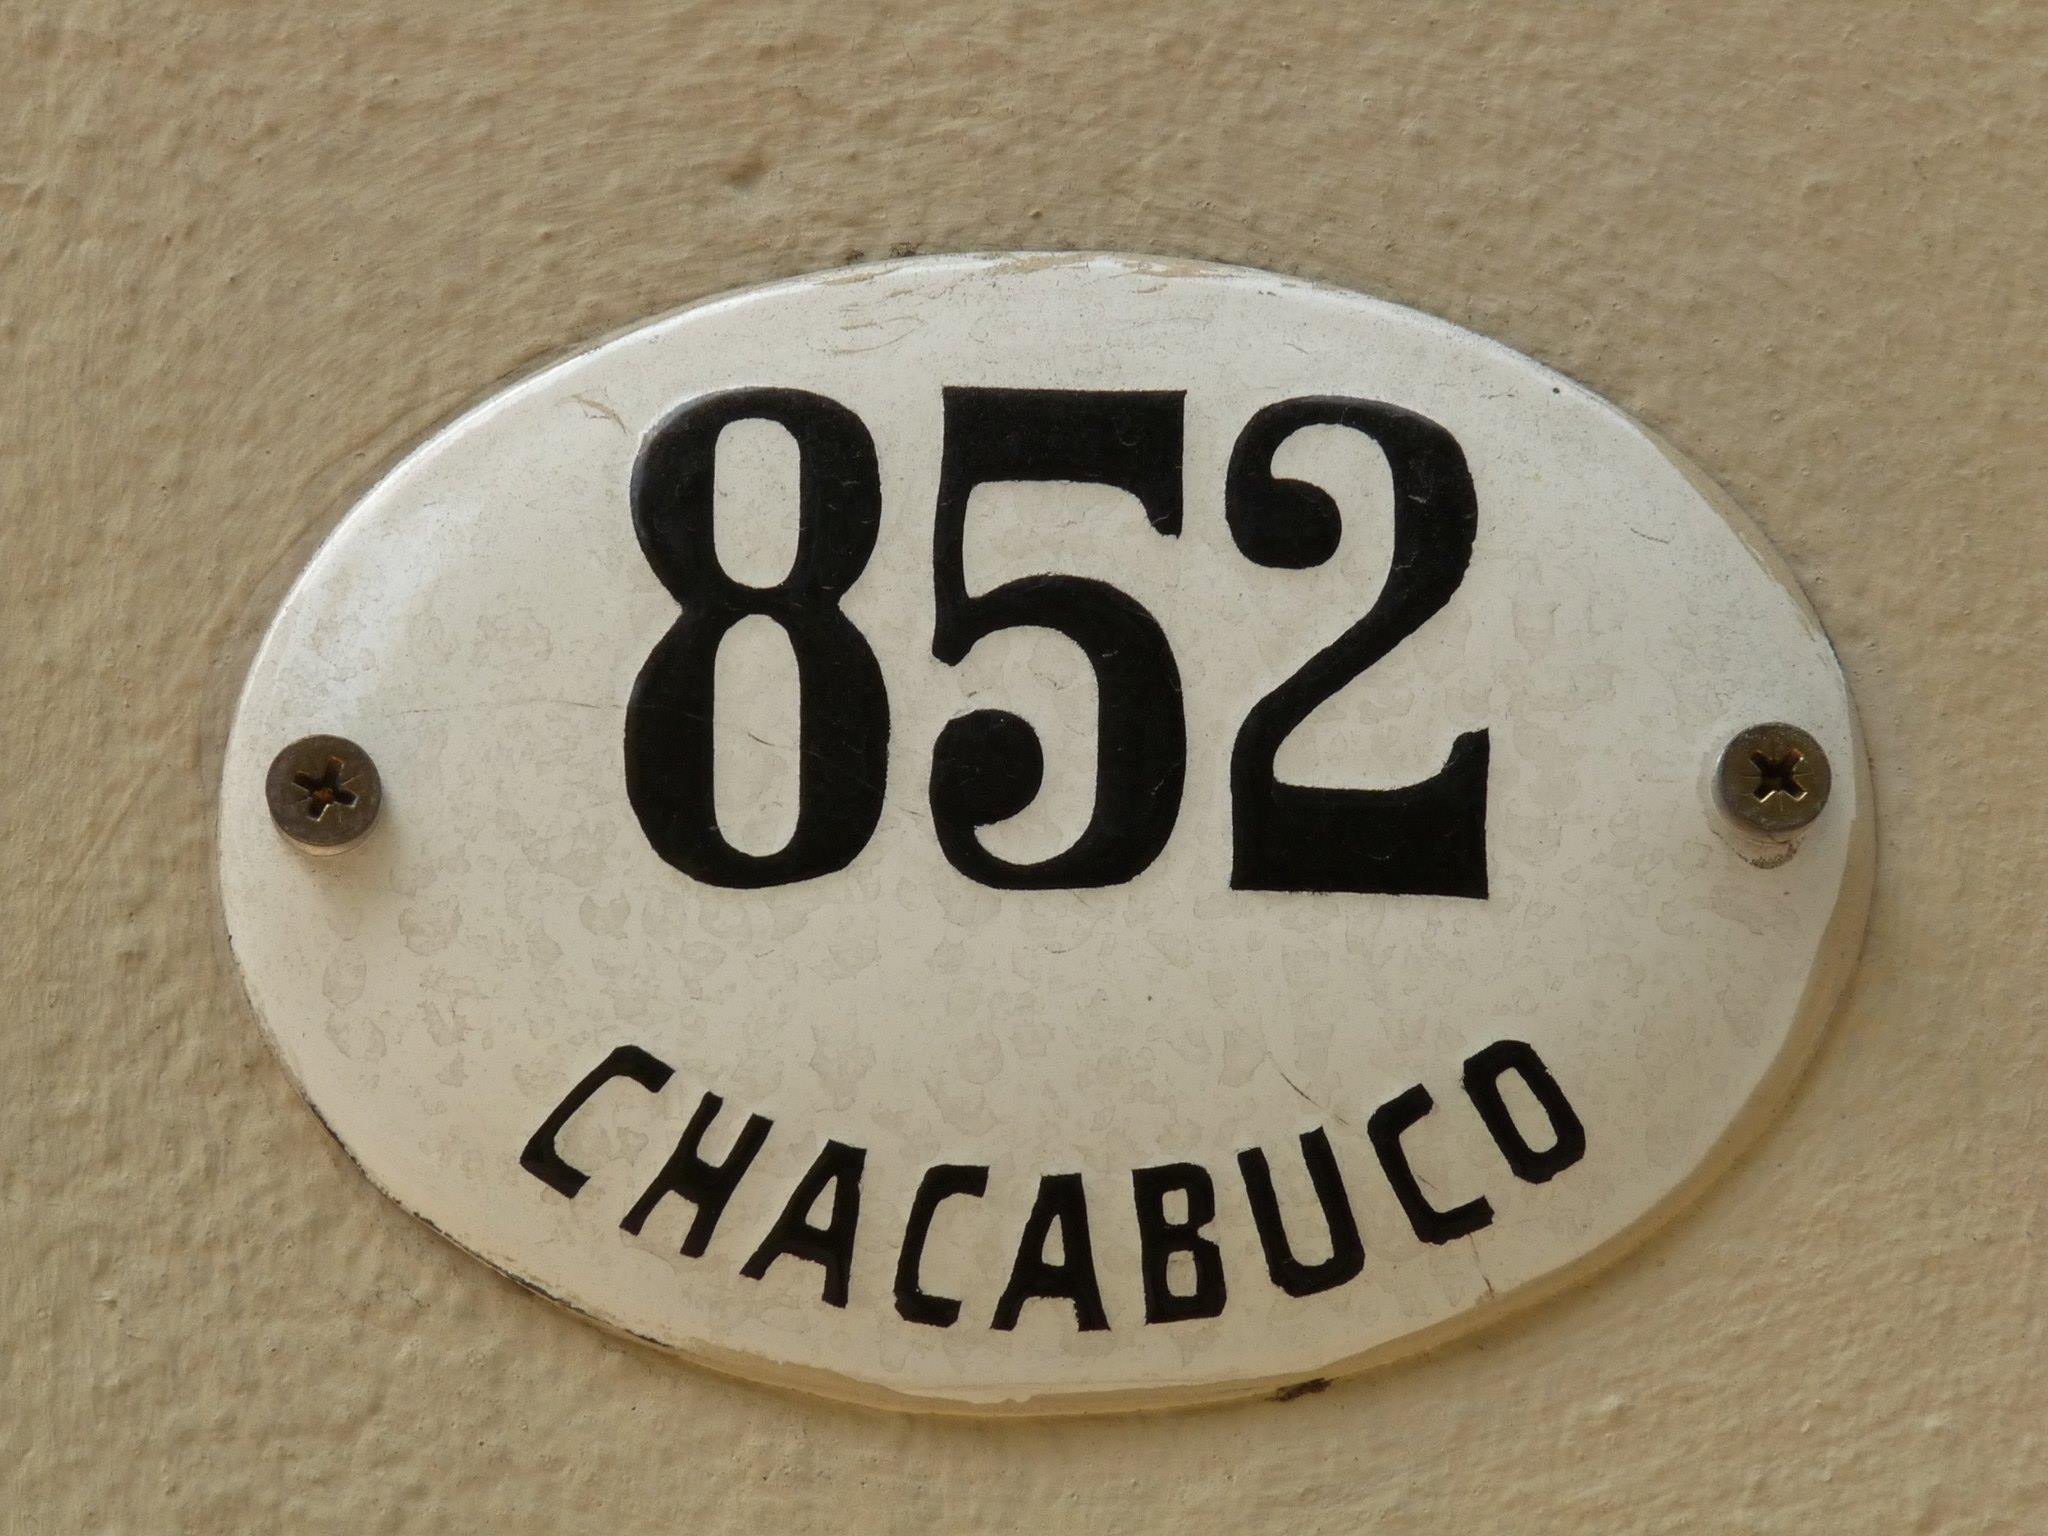 Chacabuco